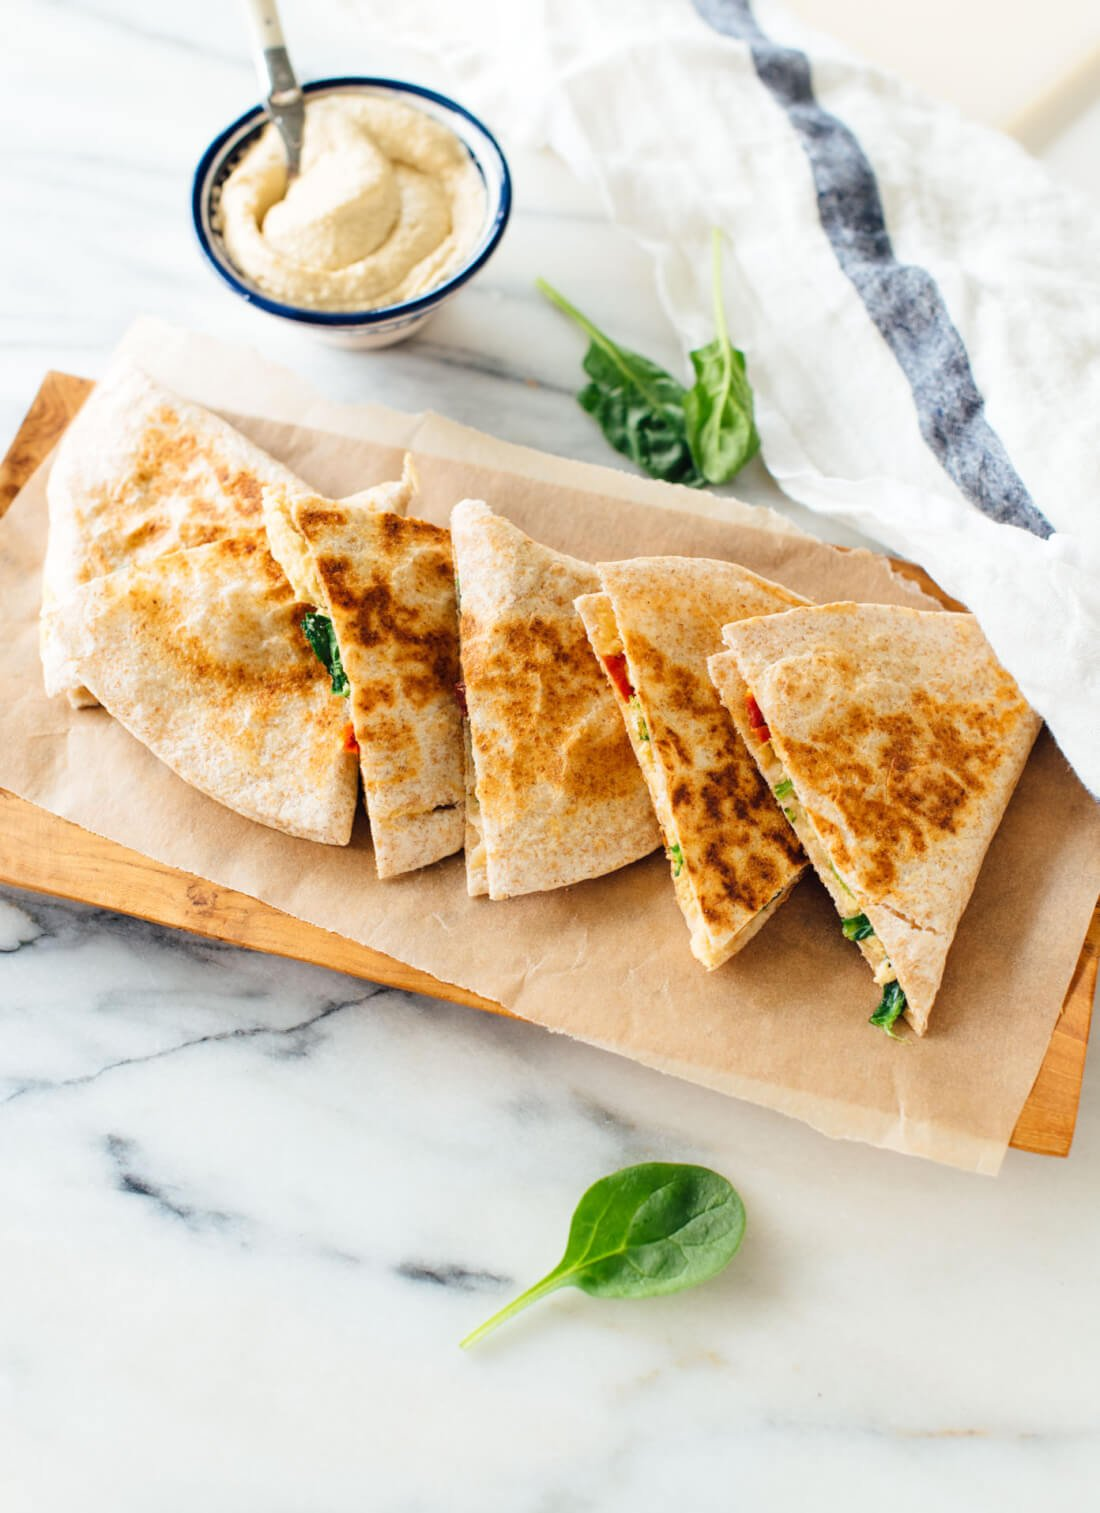 This hummus quesadilla recipe is simple, quick and healthy, too! Dairy-free and vegan (also gluten-free if you use gluten-free tortillas). Get the recipe at cookieandkate.com